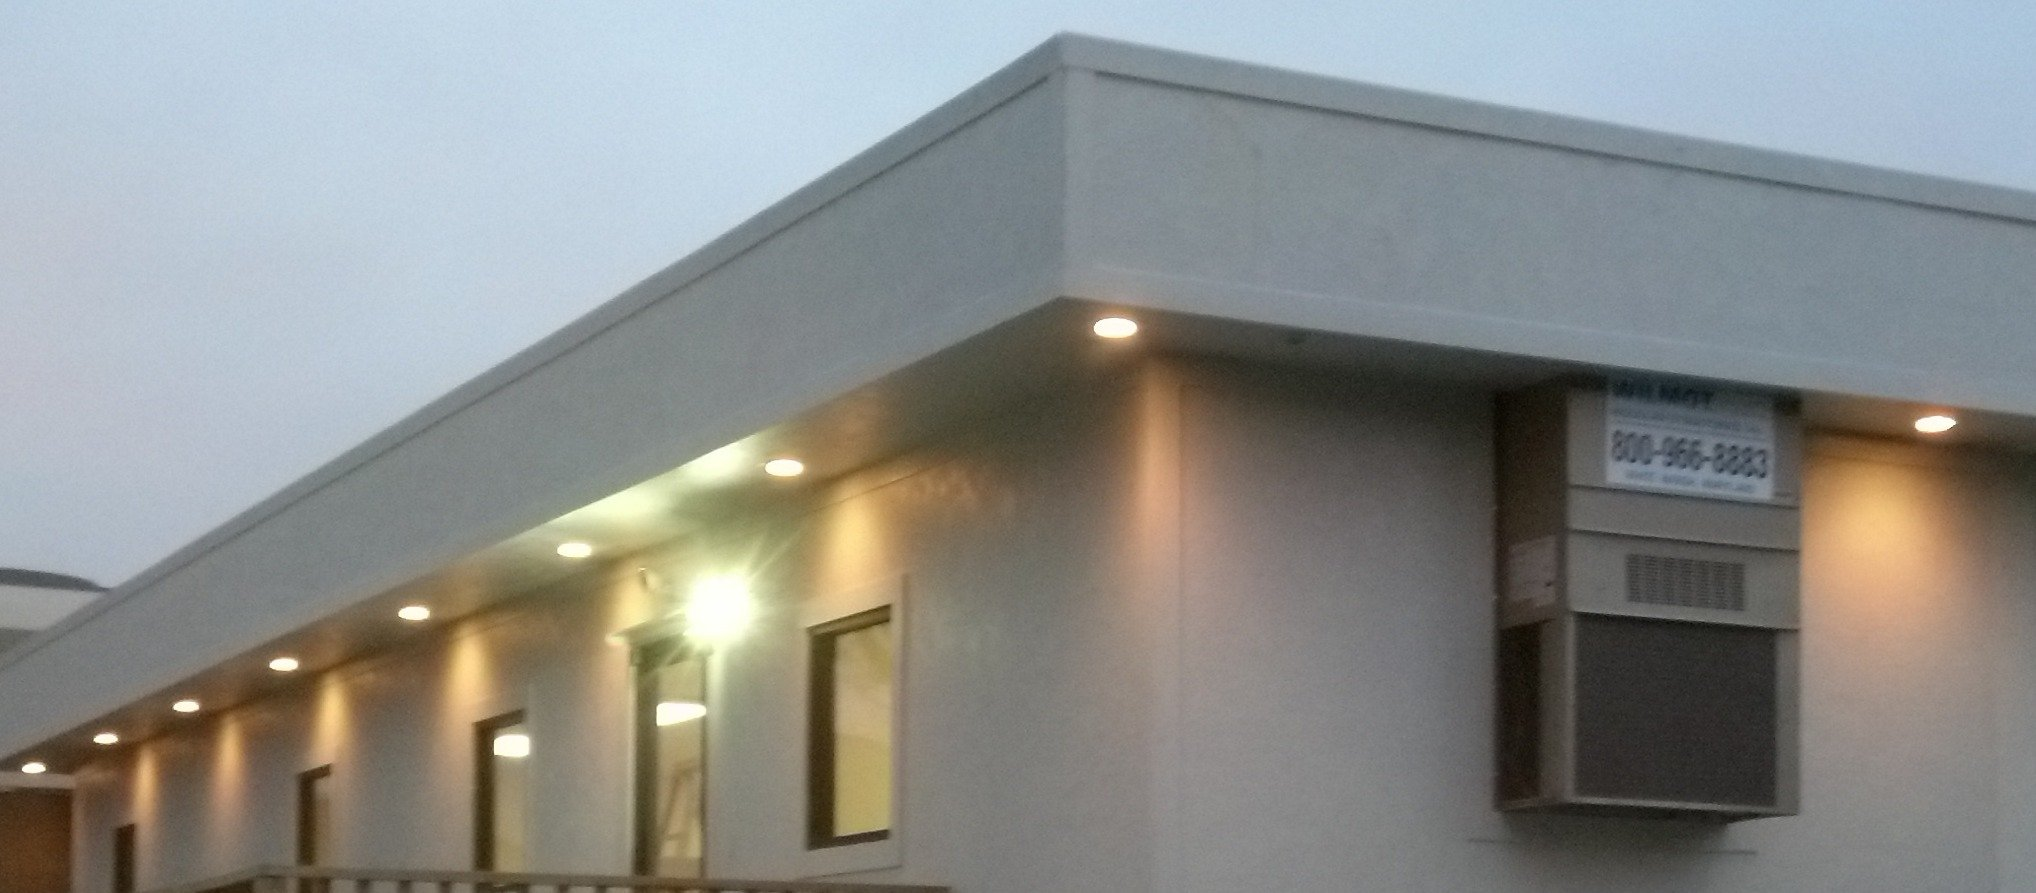 Electric-Exterior-recessed can lights (1)